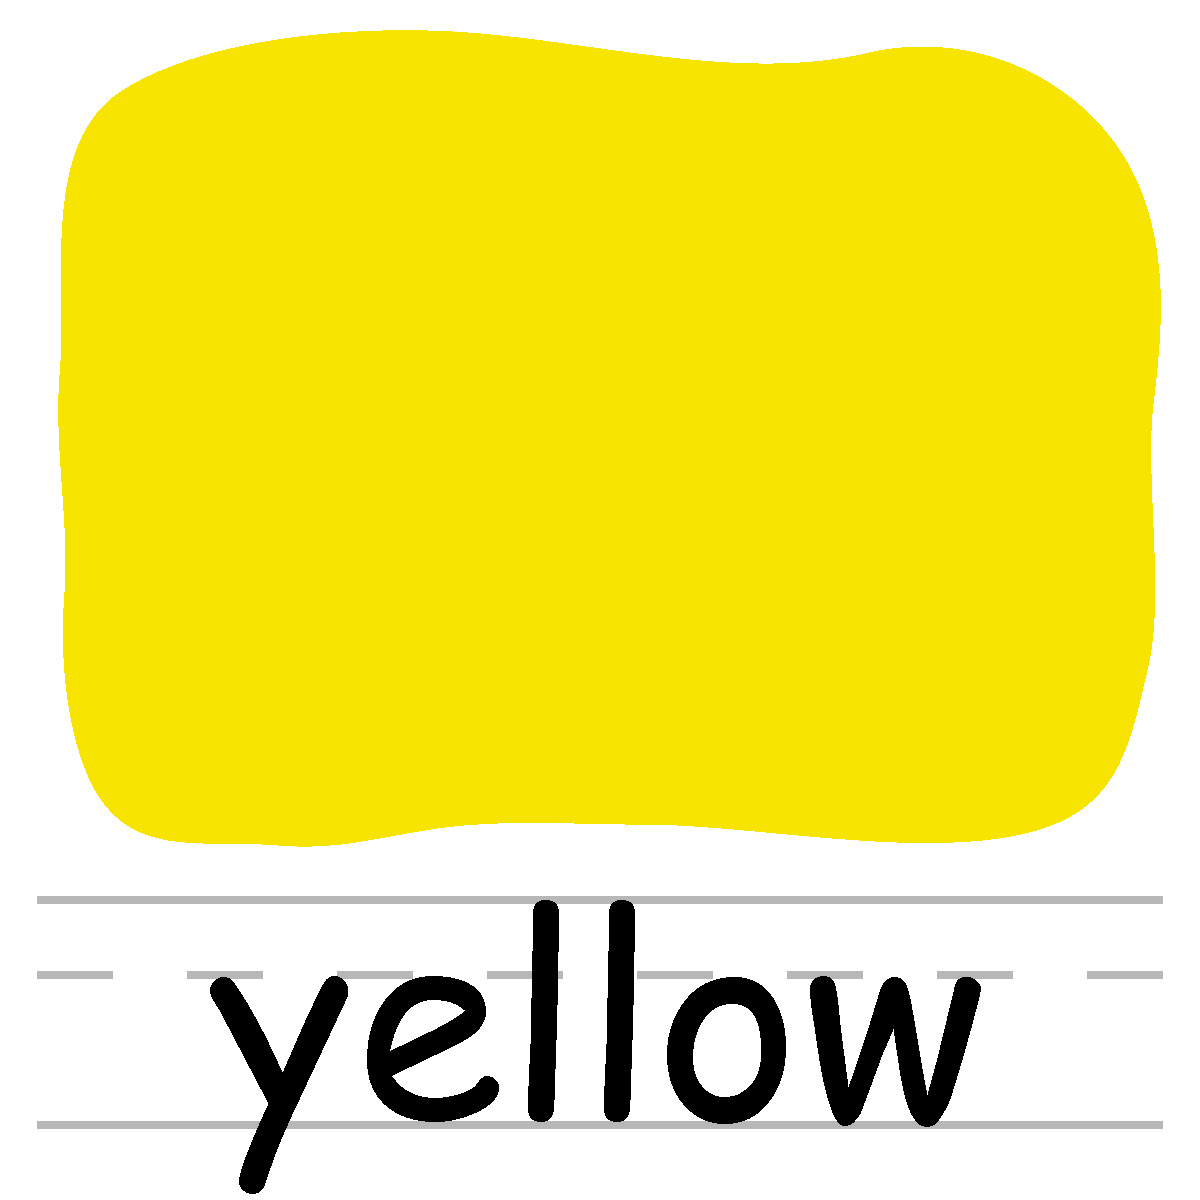 Yellow clipart #17, Download drawings